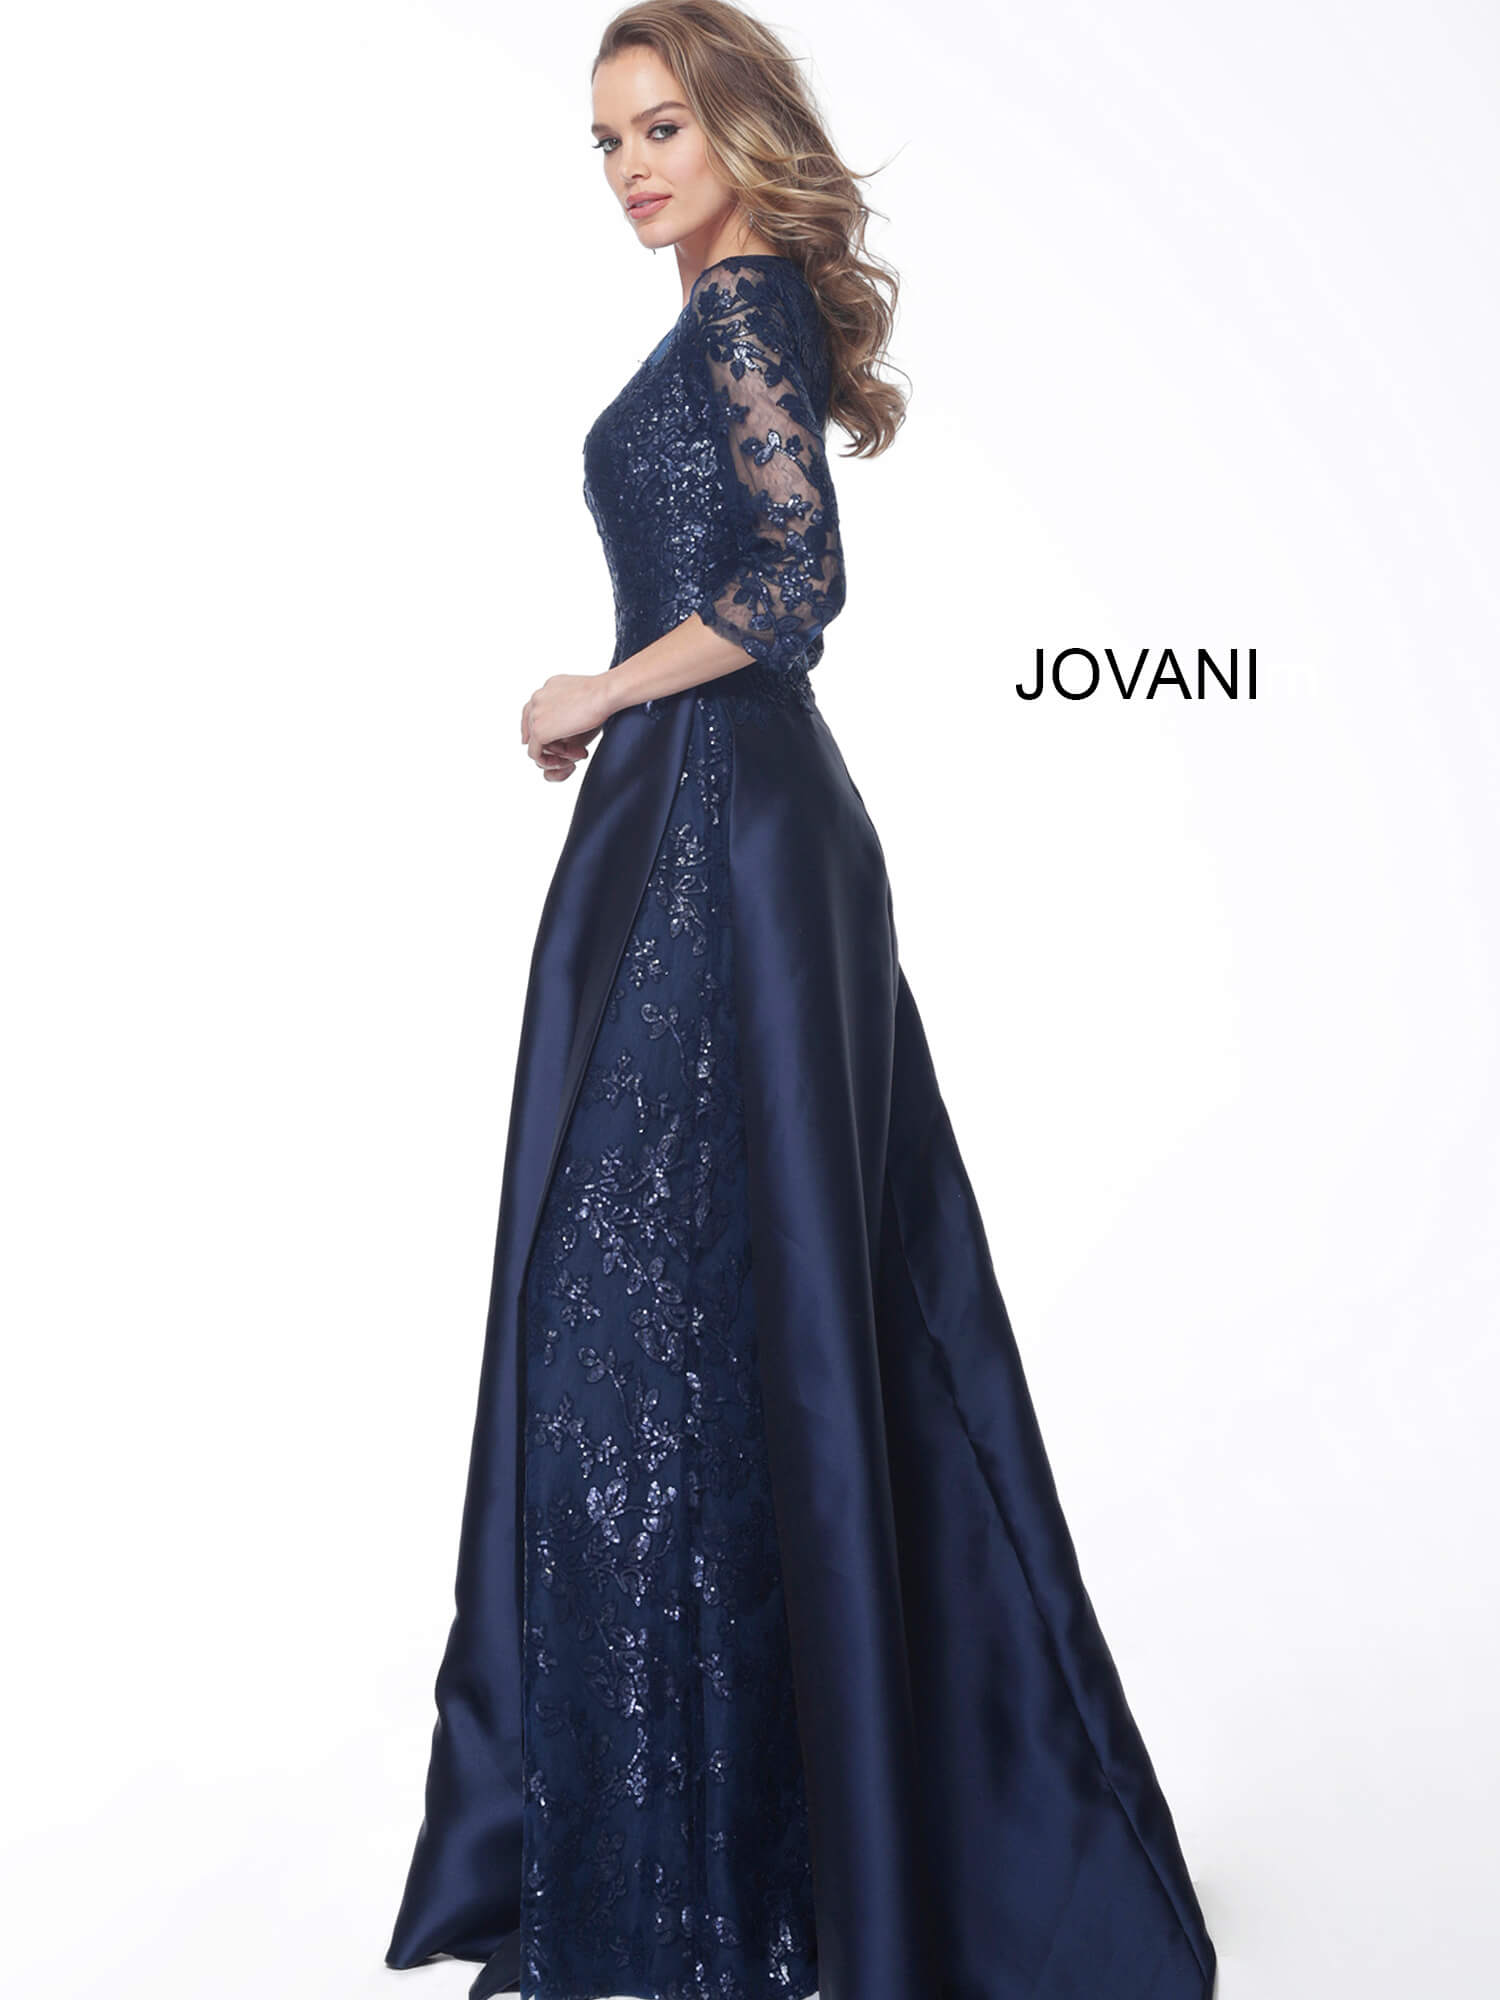 Jovani navy evening gown 61170 side view